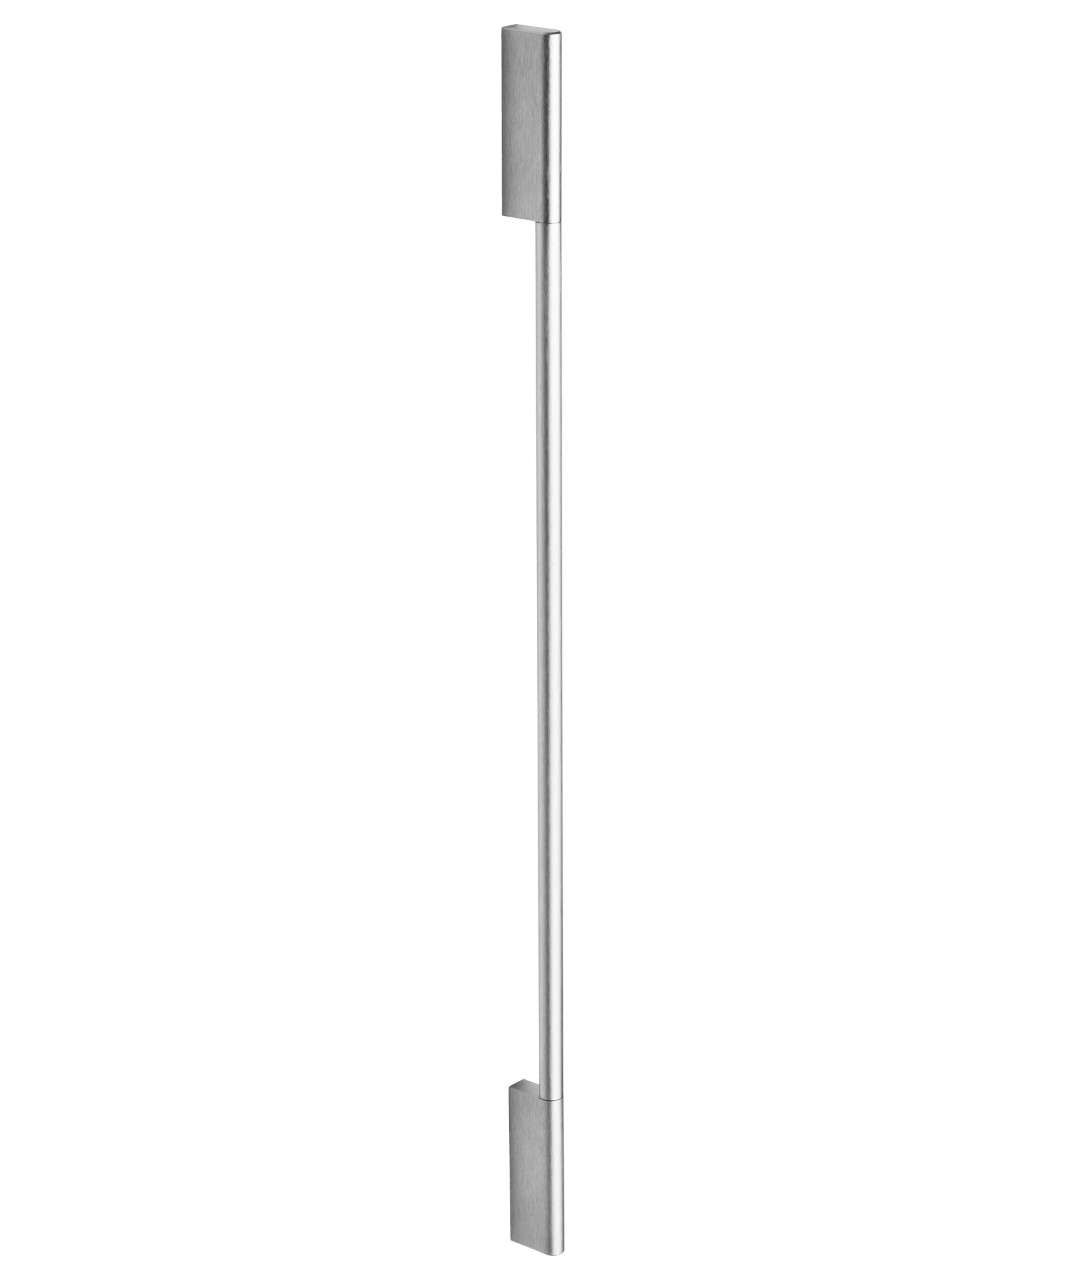 Fisher and Paykel Contemporary Round Handle Kit for Integrated Column Refrigerator or Freezer, All widths